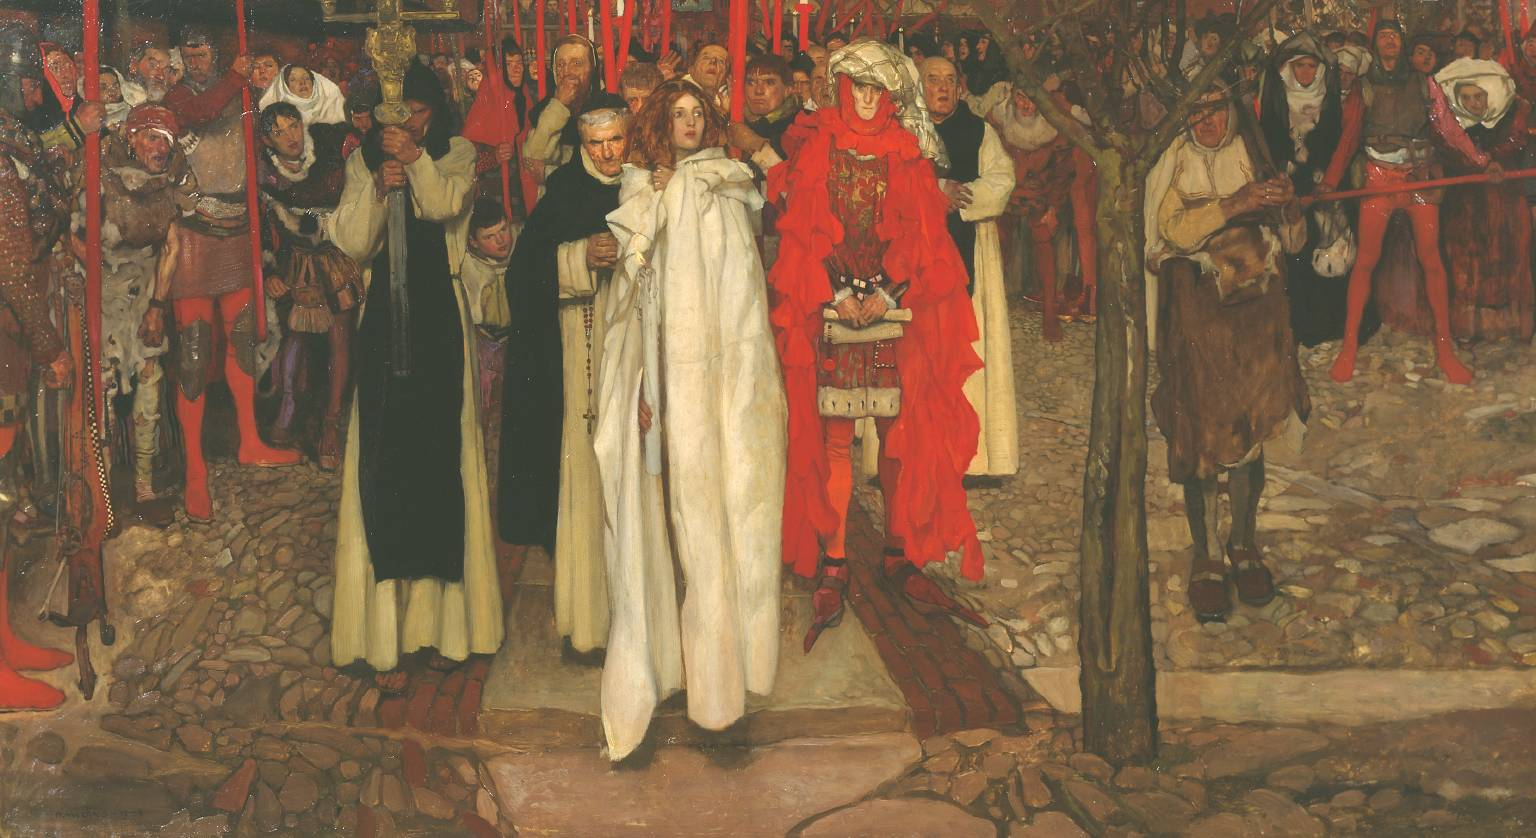 The Heretic 1906 Frank Craig 1874-1918 Presented by the Trustees of the Chantrey Bequest 1906 http://www.tate.org.uk/art/work/N02071